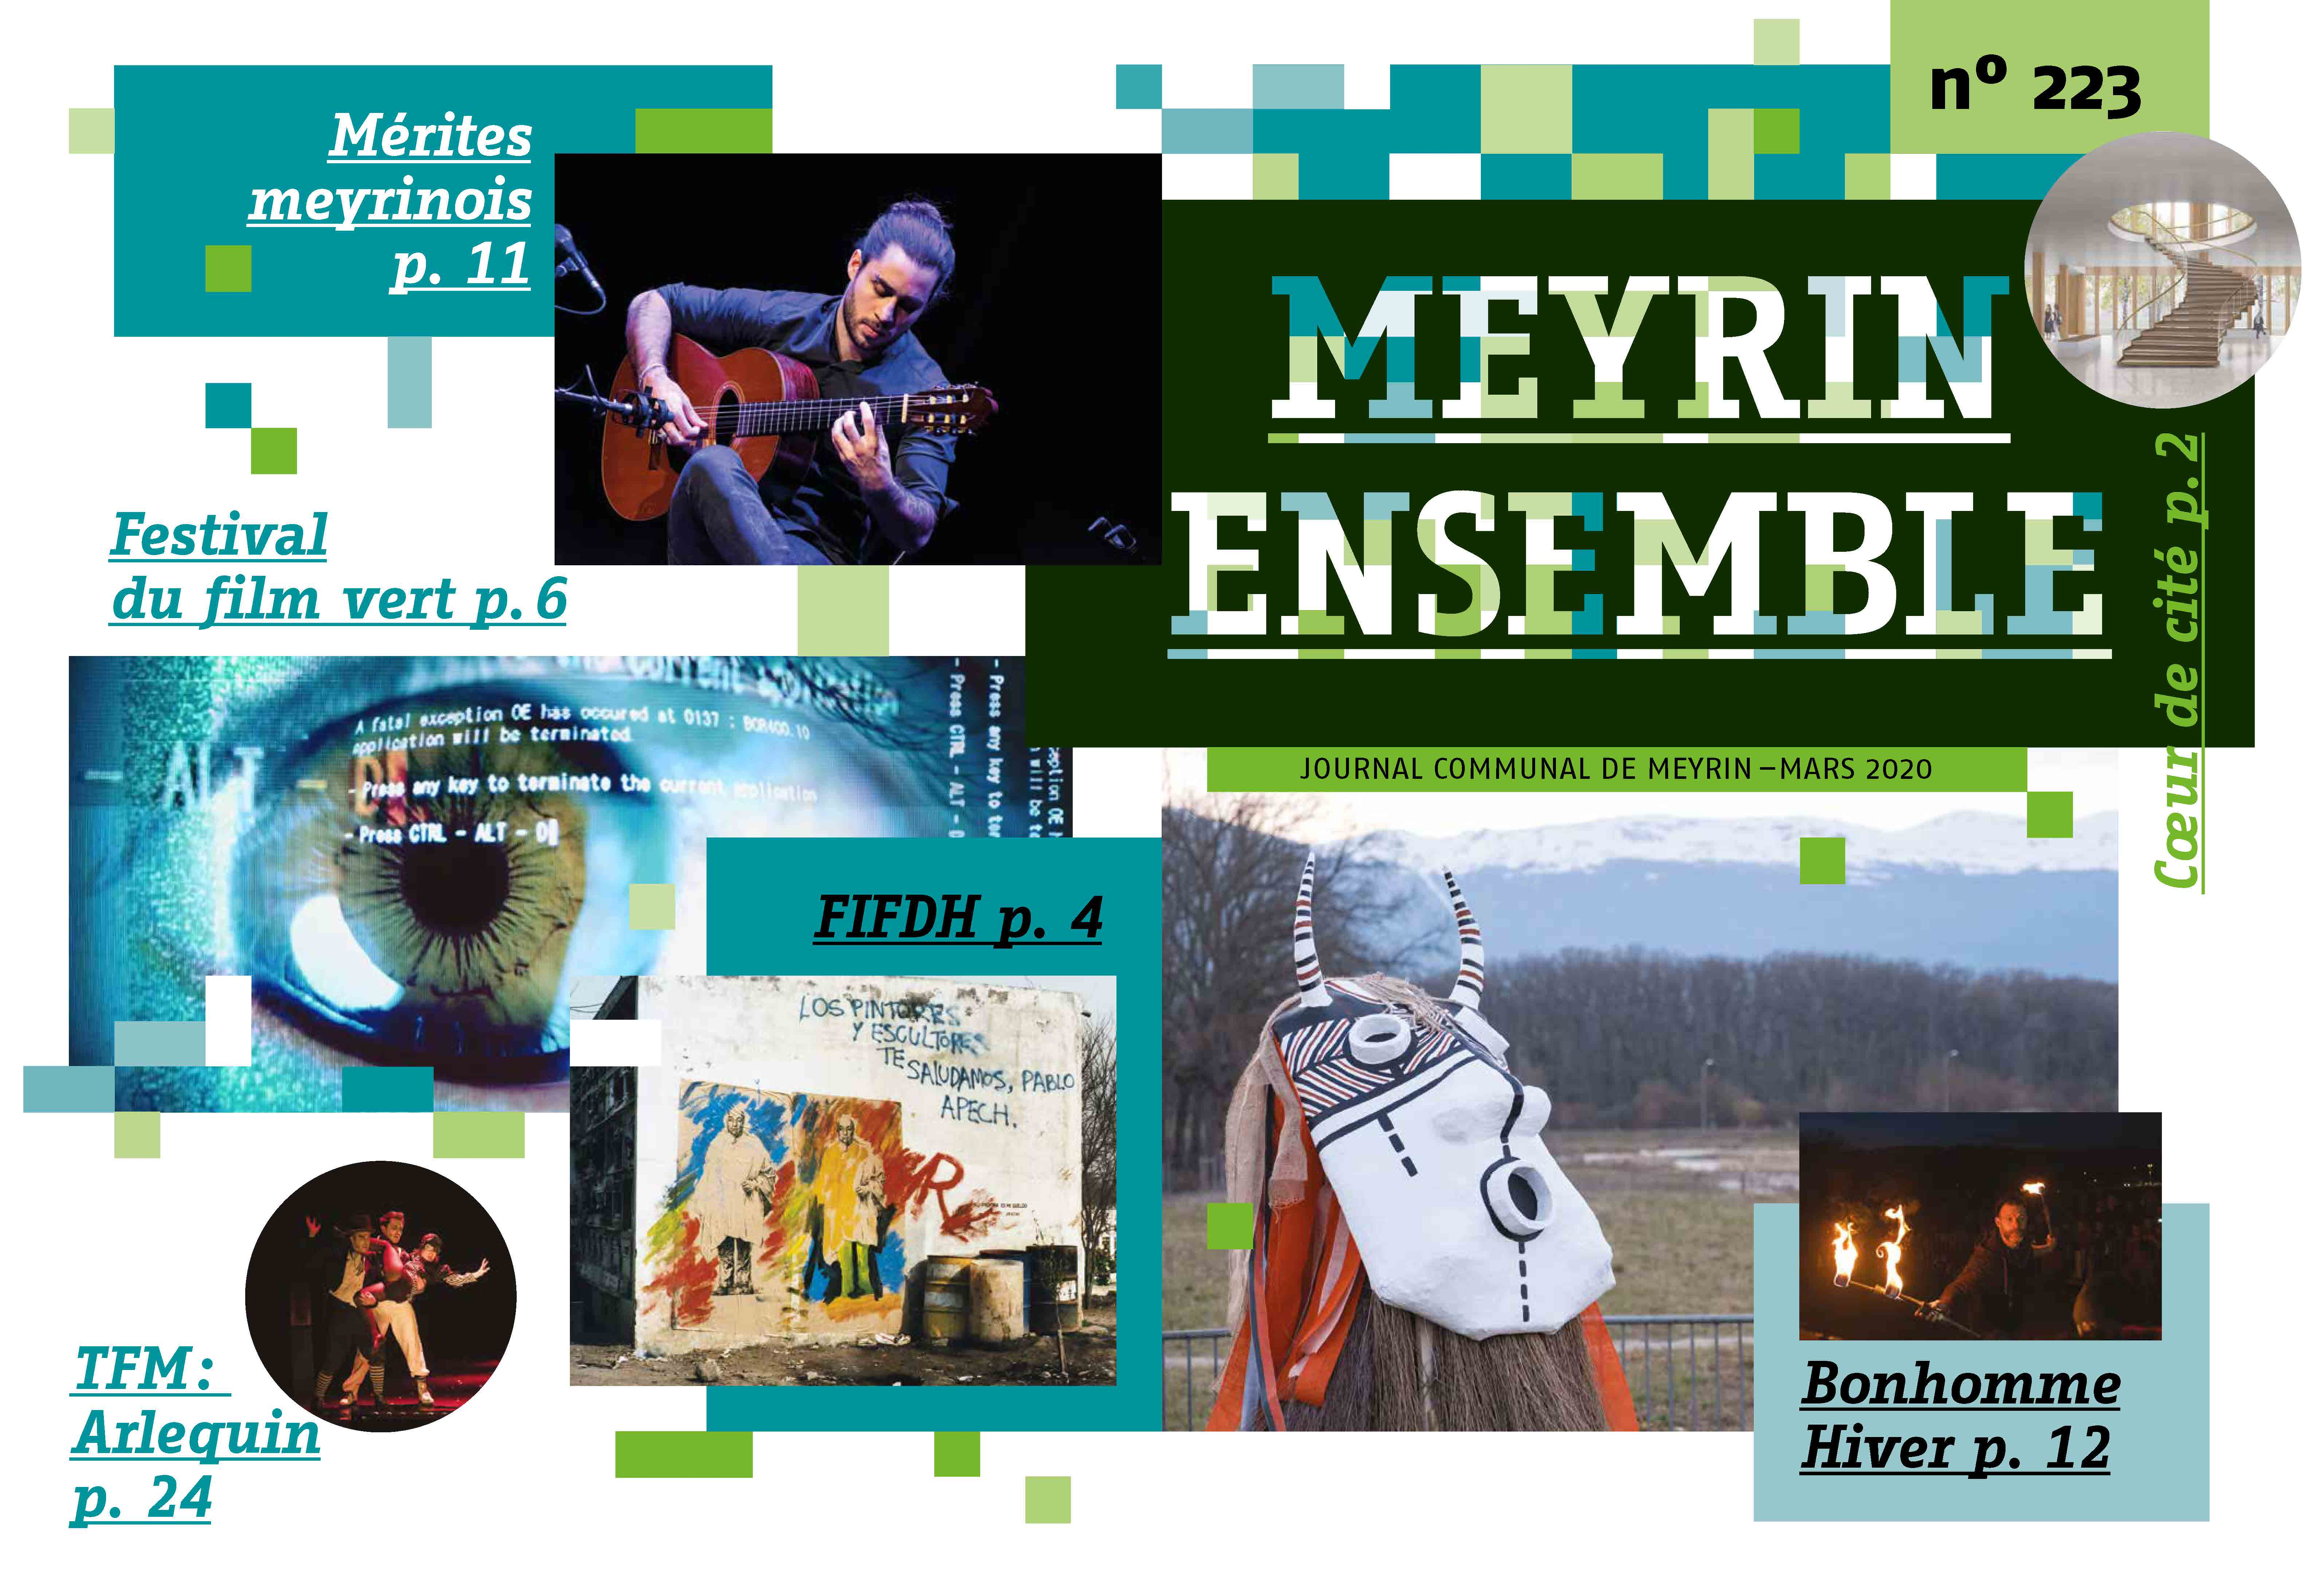 Meyrin ensemble Avril 2020